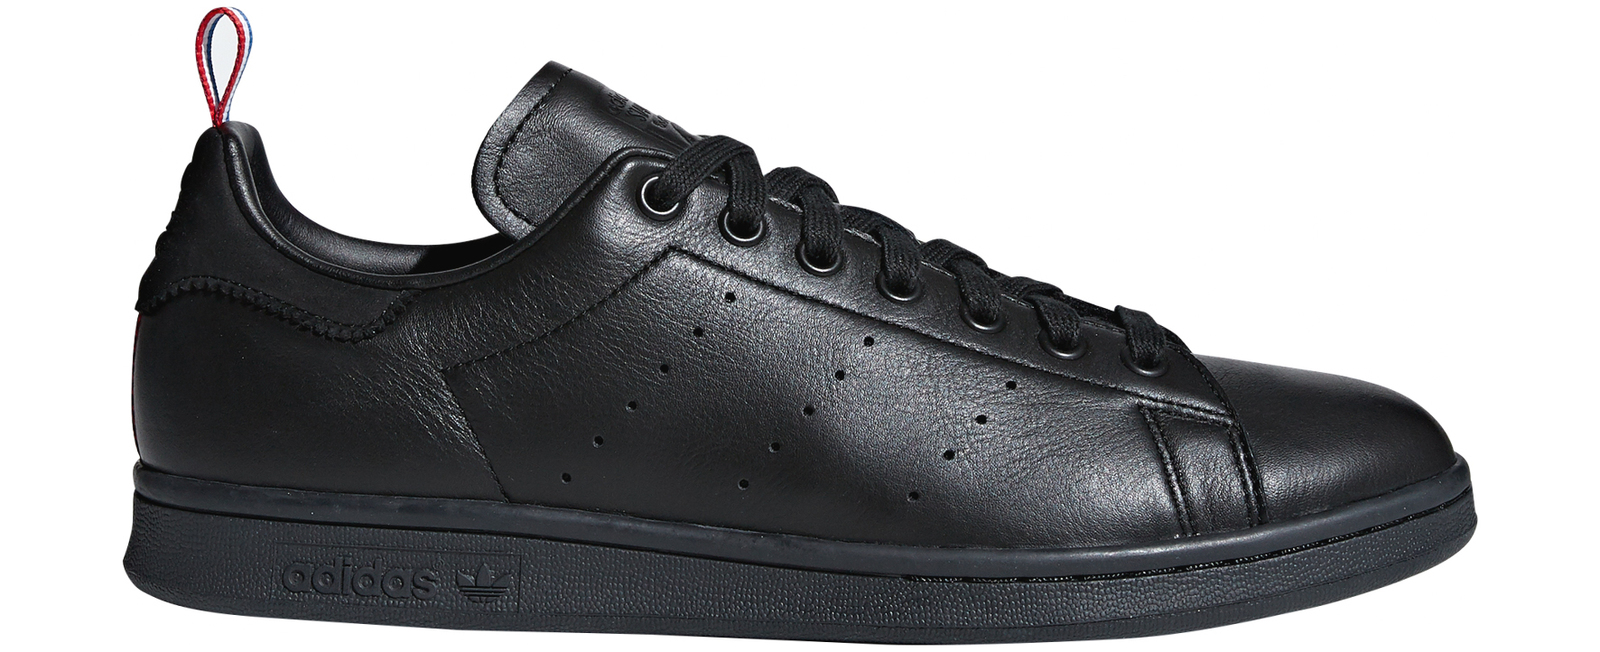 adidas Originals Stan Smith Sportcipő Fekete << lejárt 2951359 10 fotója